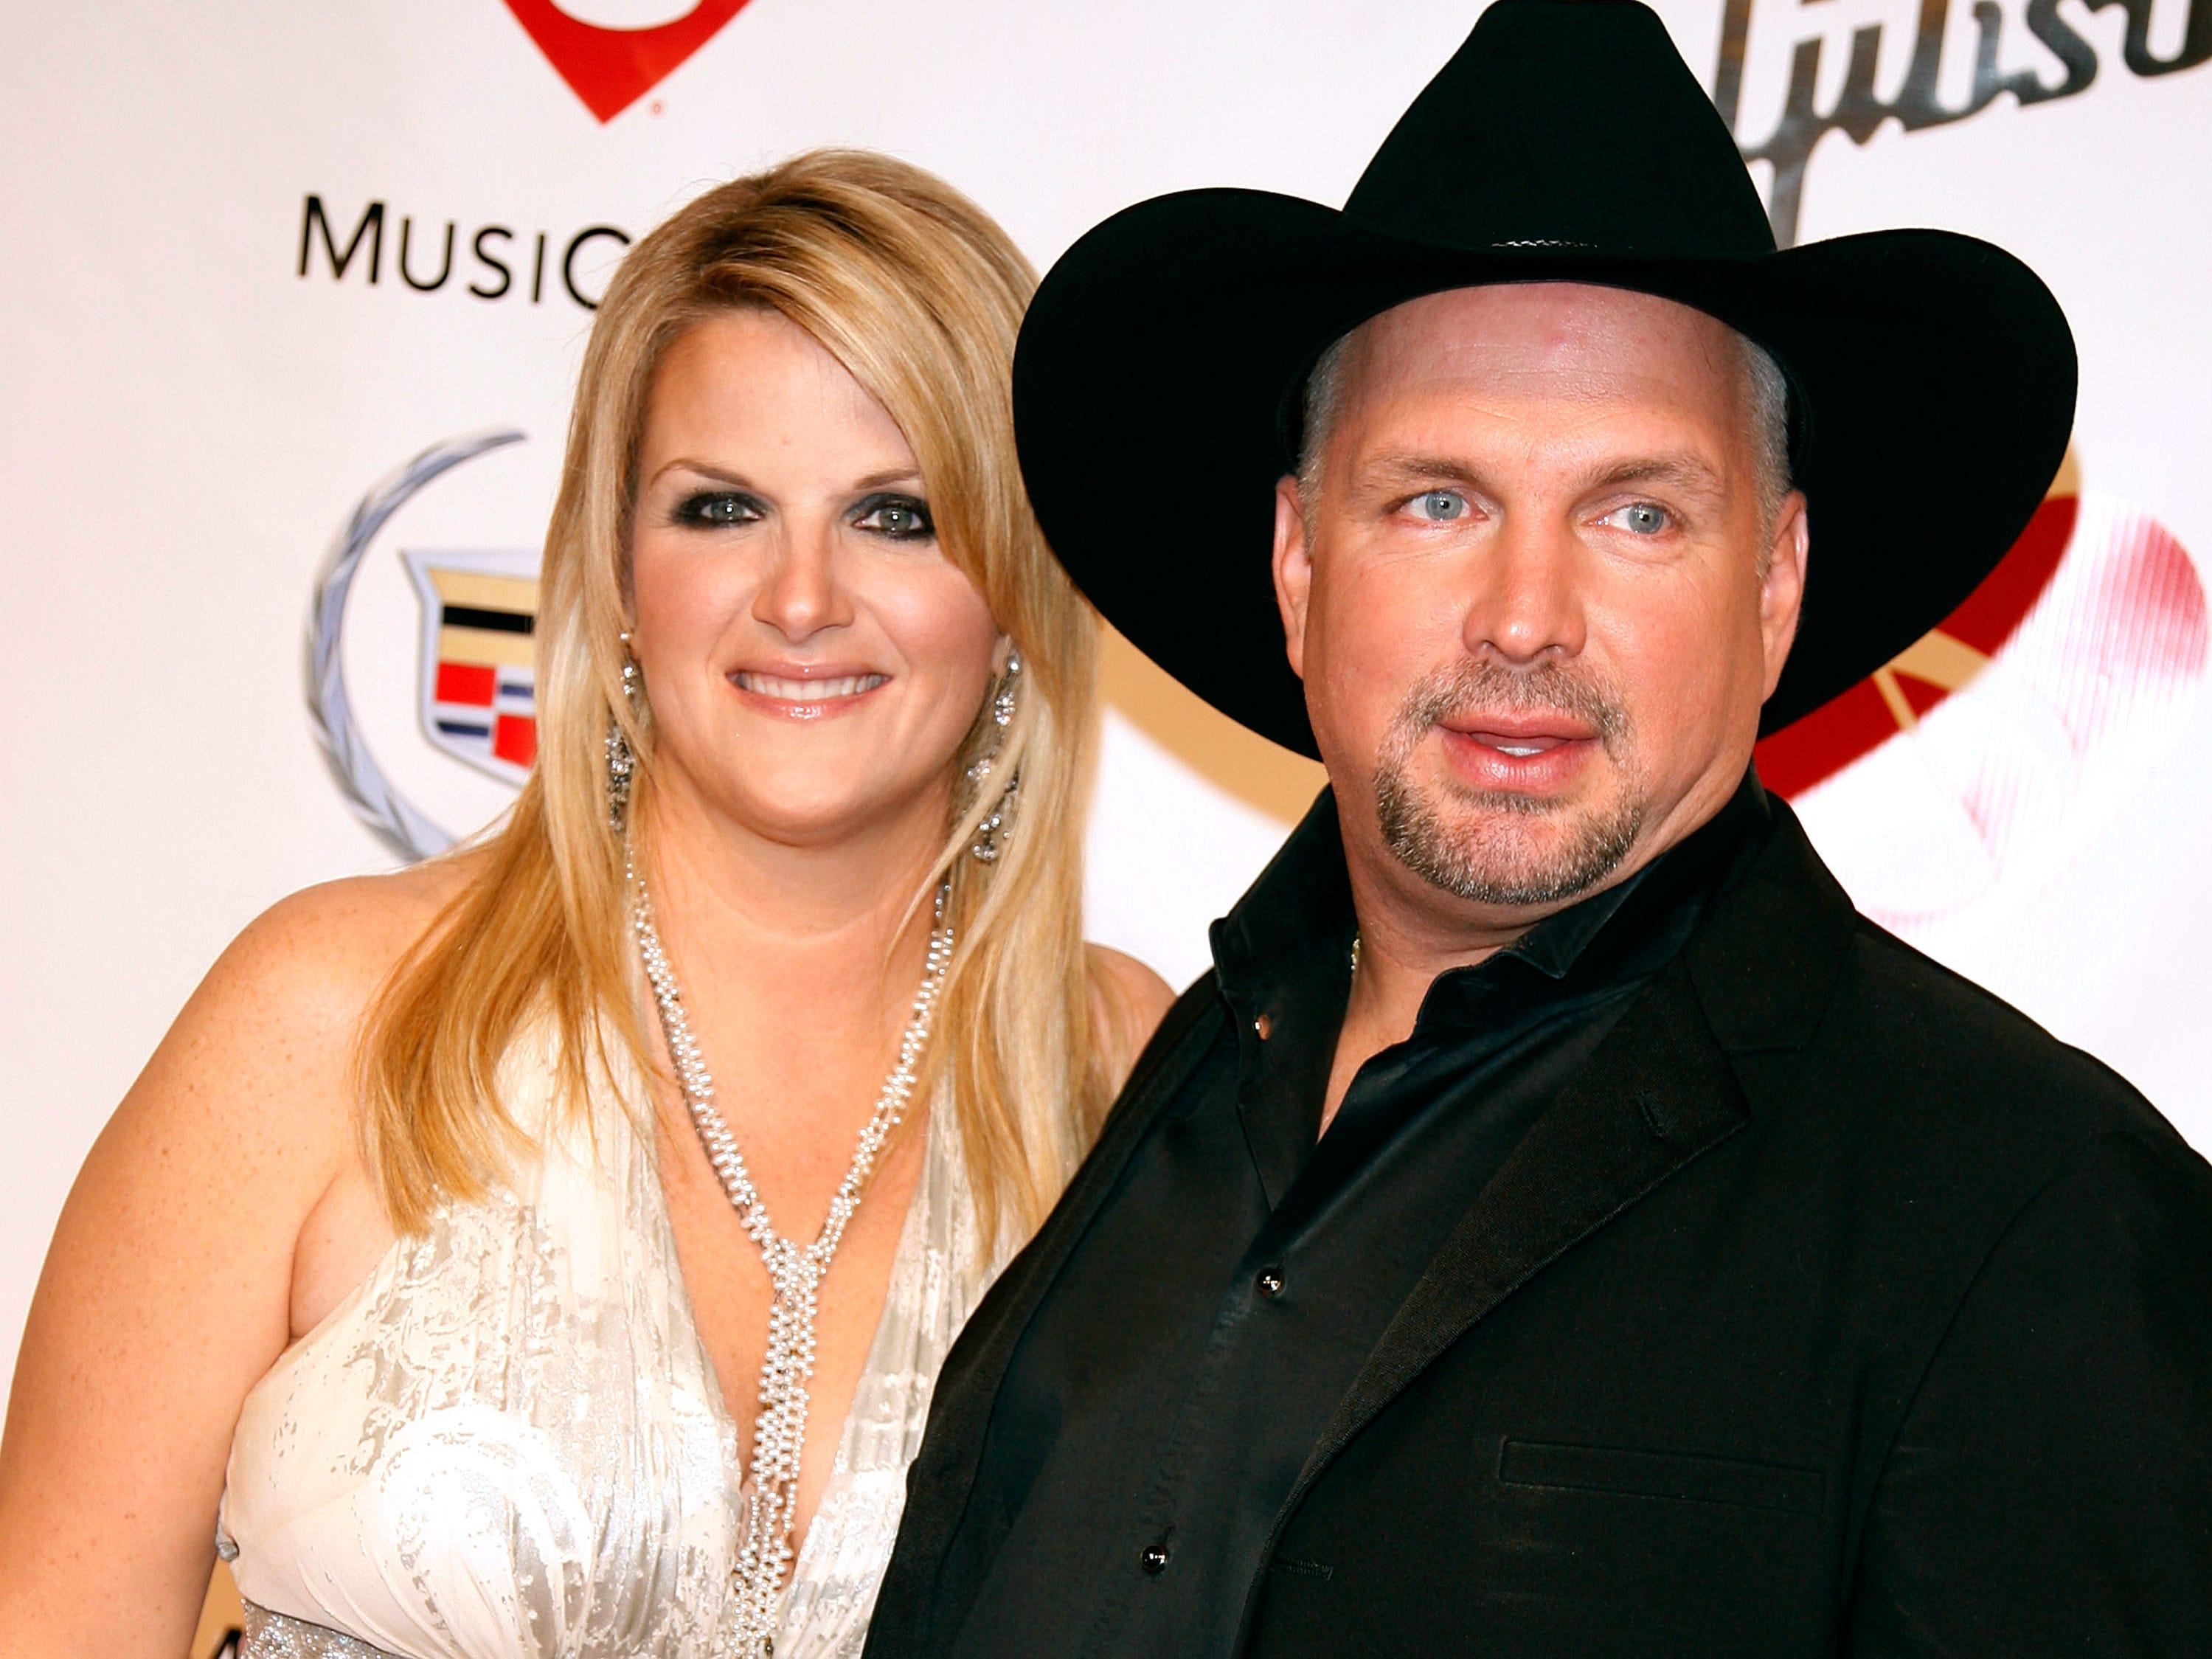 Trisha Yearwood and Garth Brooks arrive at the 2007 MusiCares Person of the Year honoring Don Henley at the Los Angeles Convention Center on February 9, 2007 in Los Angeles, California.